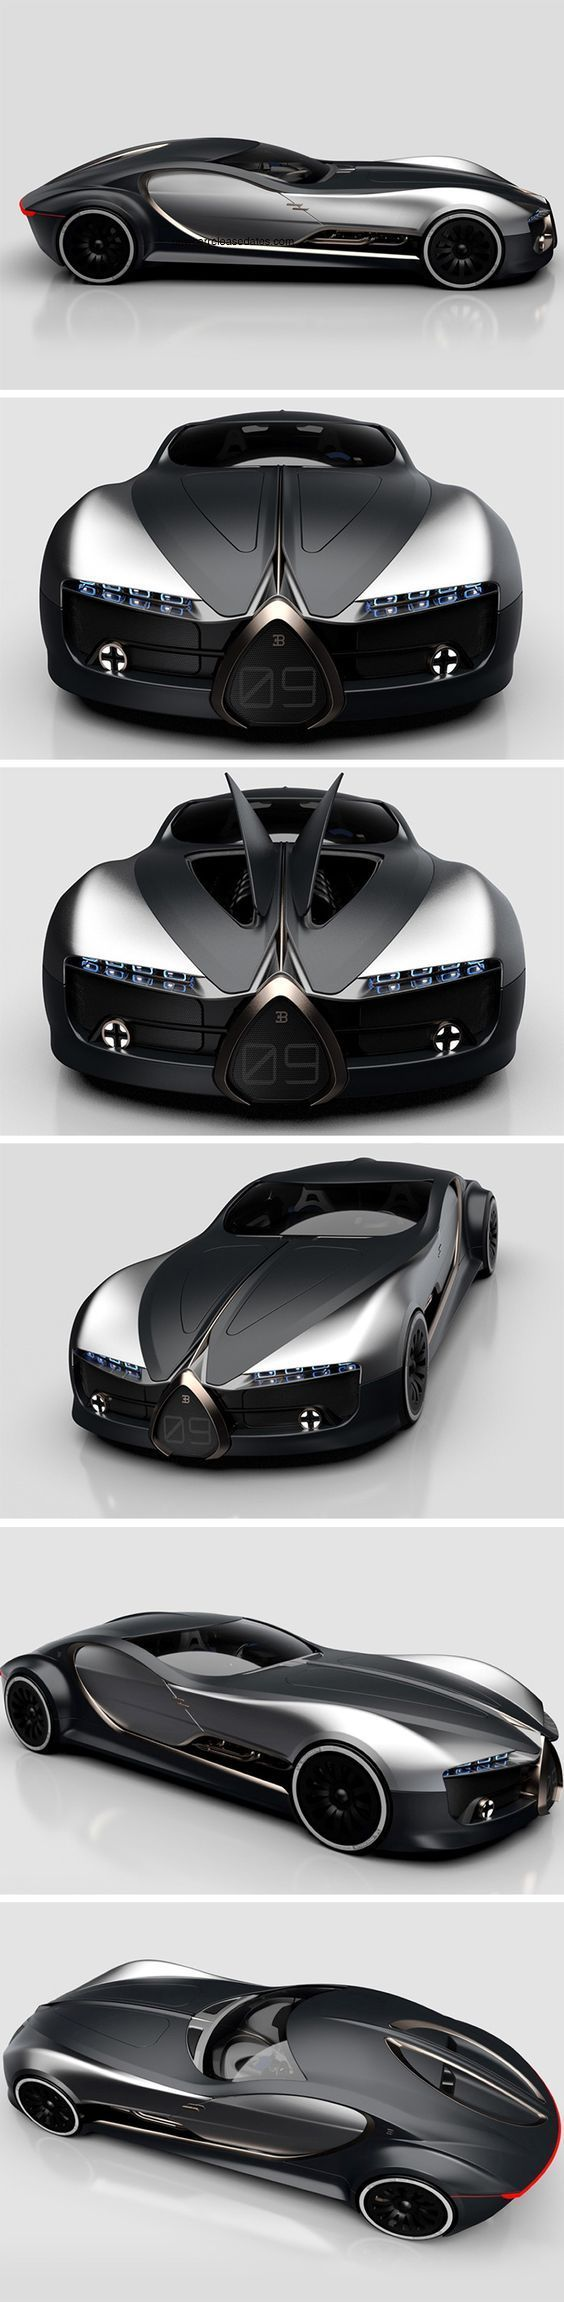 """MUST SEE """" 2017 Bugatti Type 57T"""", 2017 Concept Car Photos and Images, 2017 Cars"""